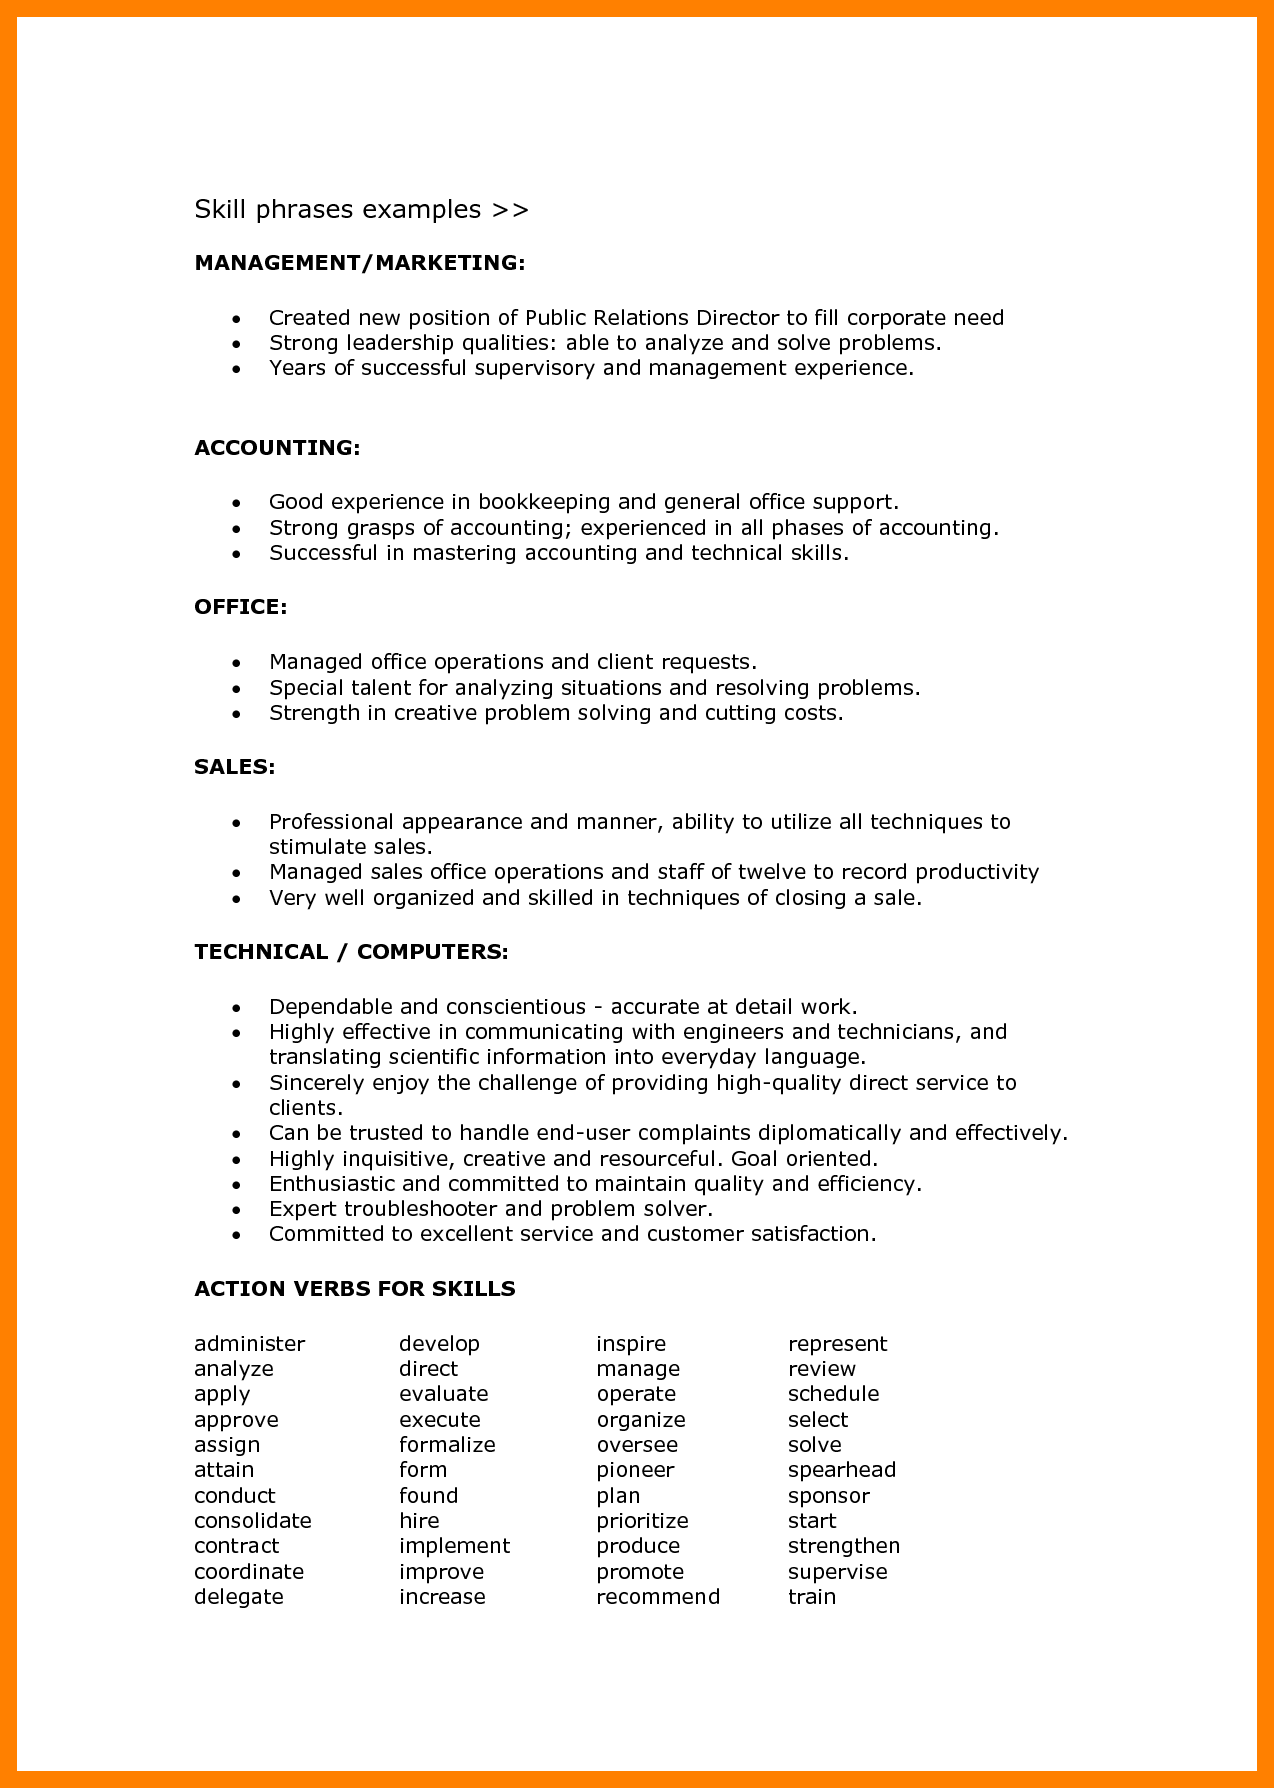 Technical Skills On A Resume Resume Format Language Skills  Resume Format  Pinterest  Resume .